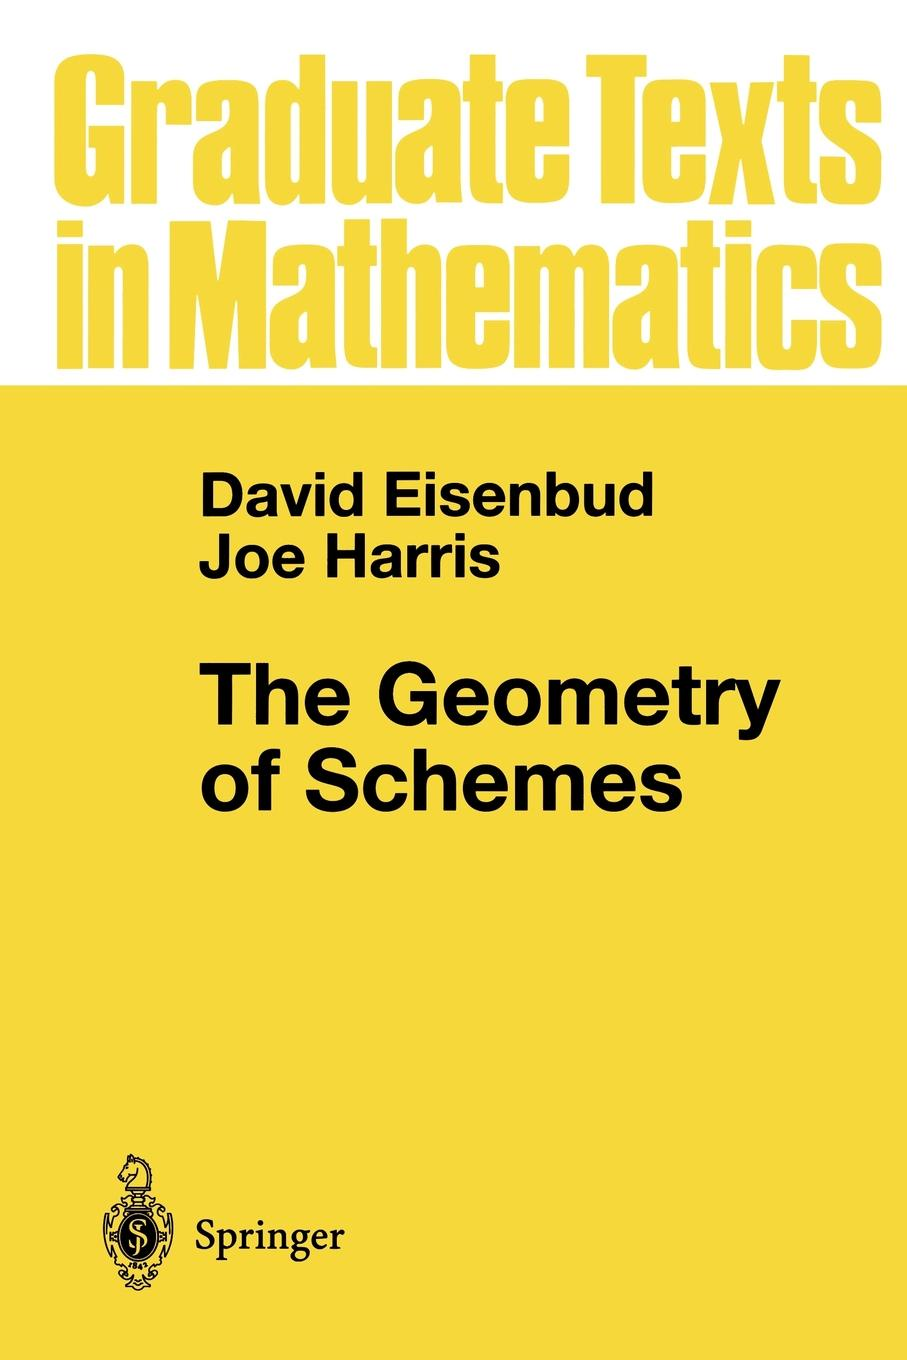 где купить David Eisenbud, Joe Harris The Geometry of Schemes дешево